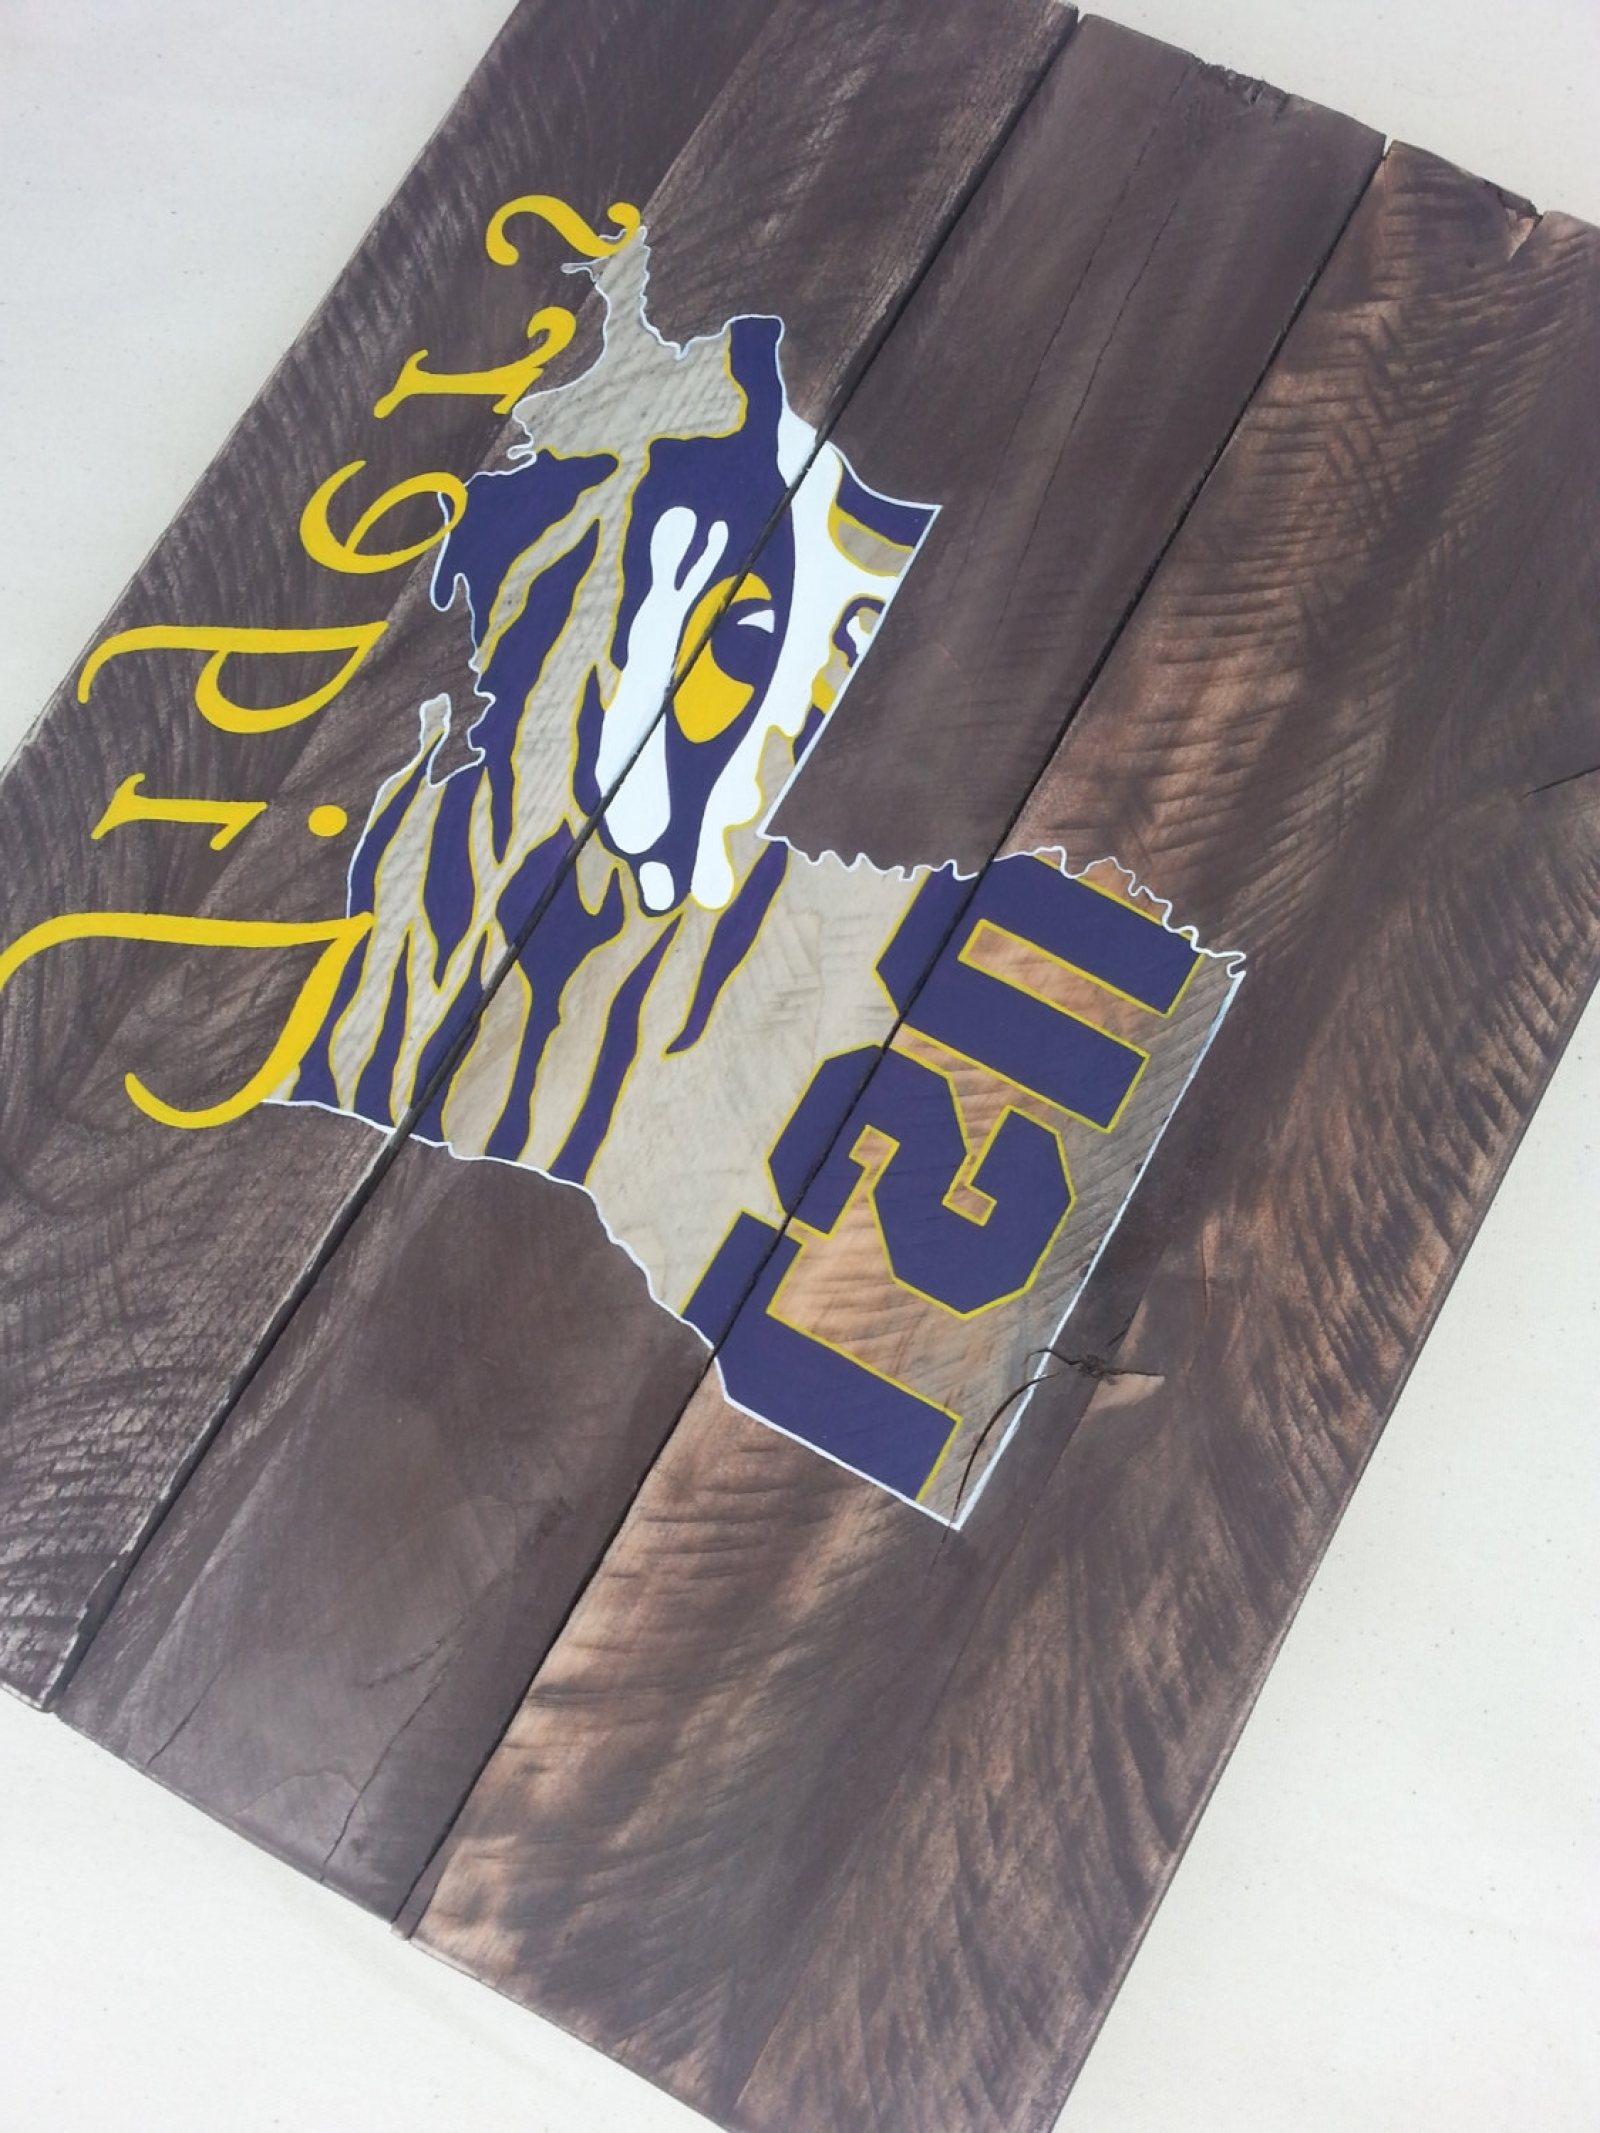 Lsu Tiger Eye Hand Painted Pallet Art Or Pallet Sign Original In Most Recent Lsu Wall Art (View 5 of 15)